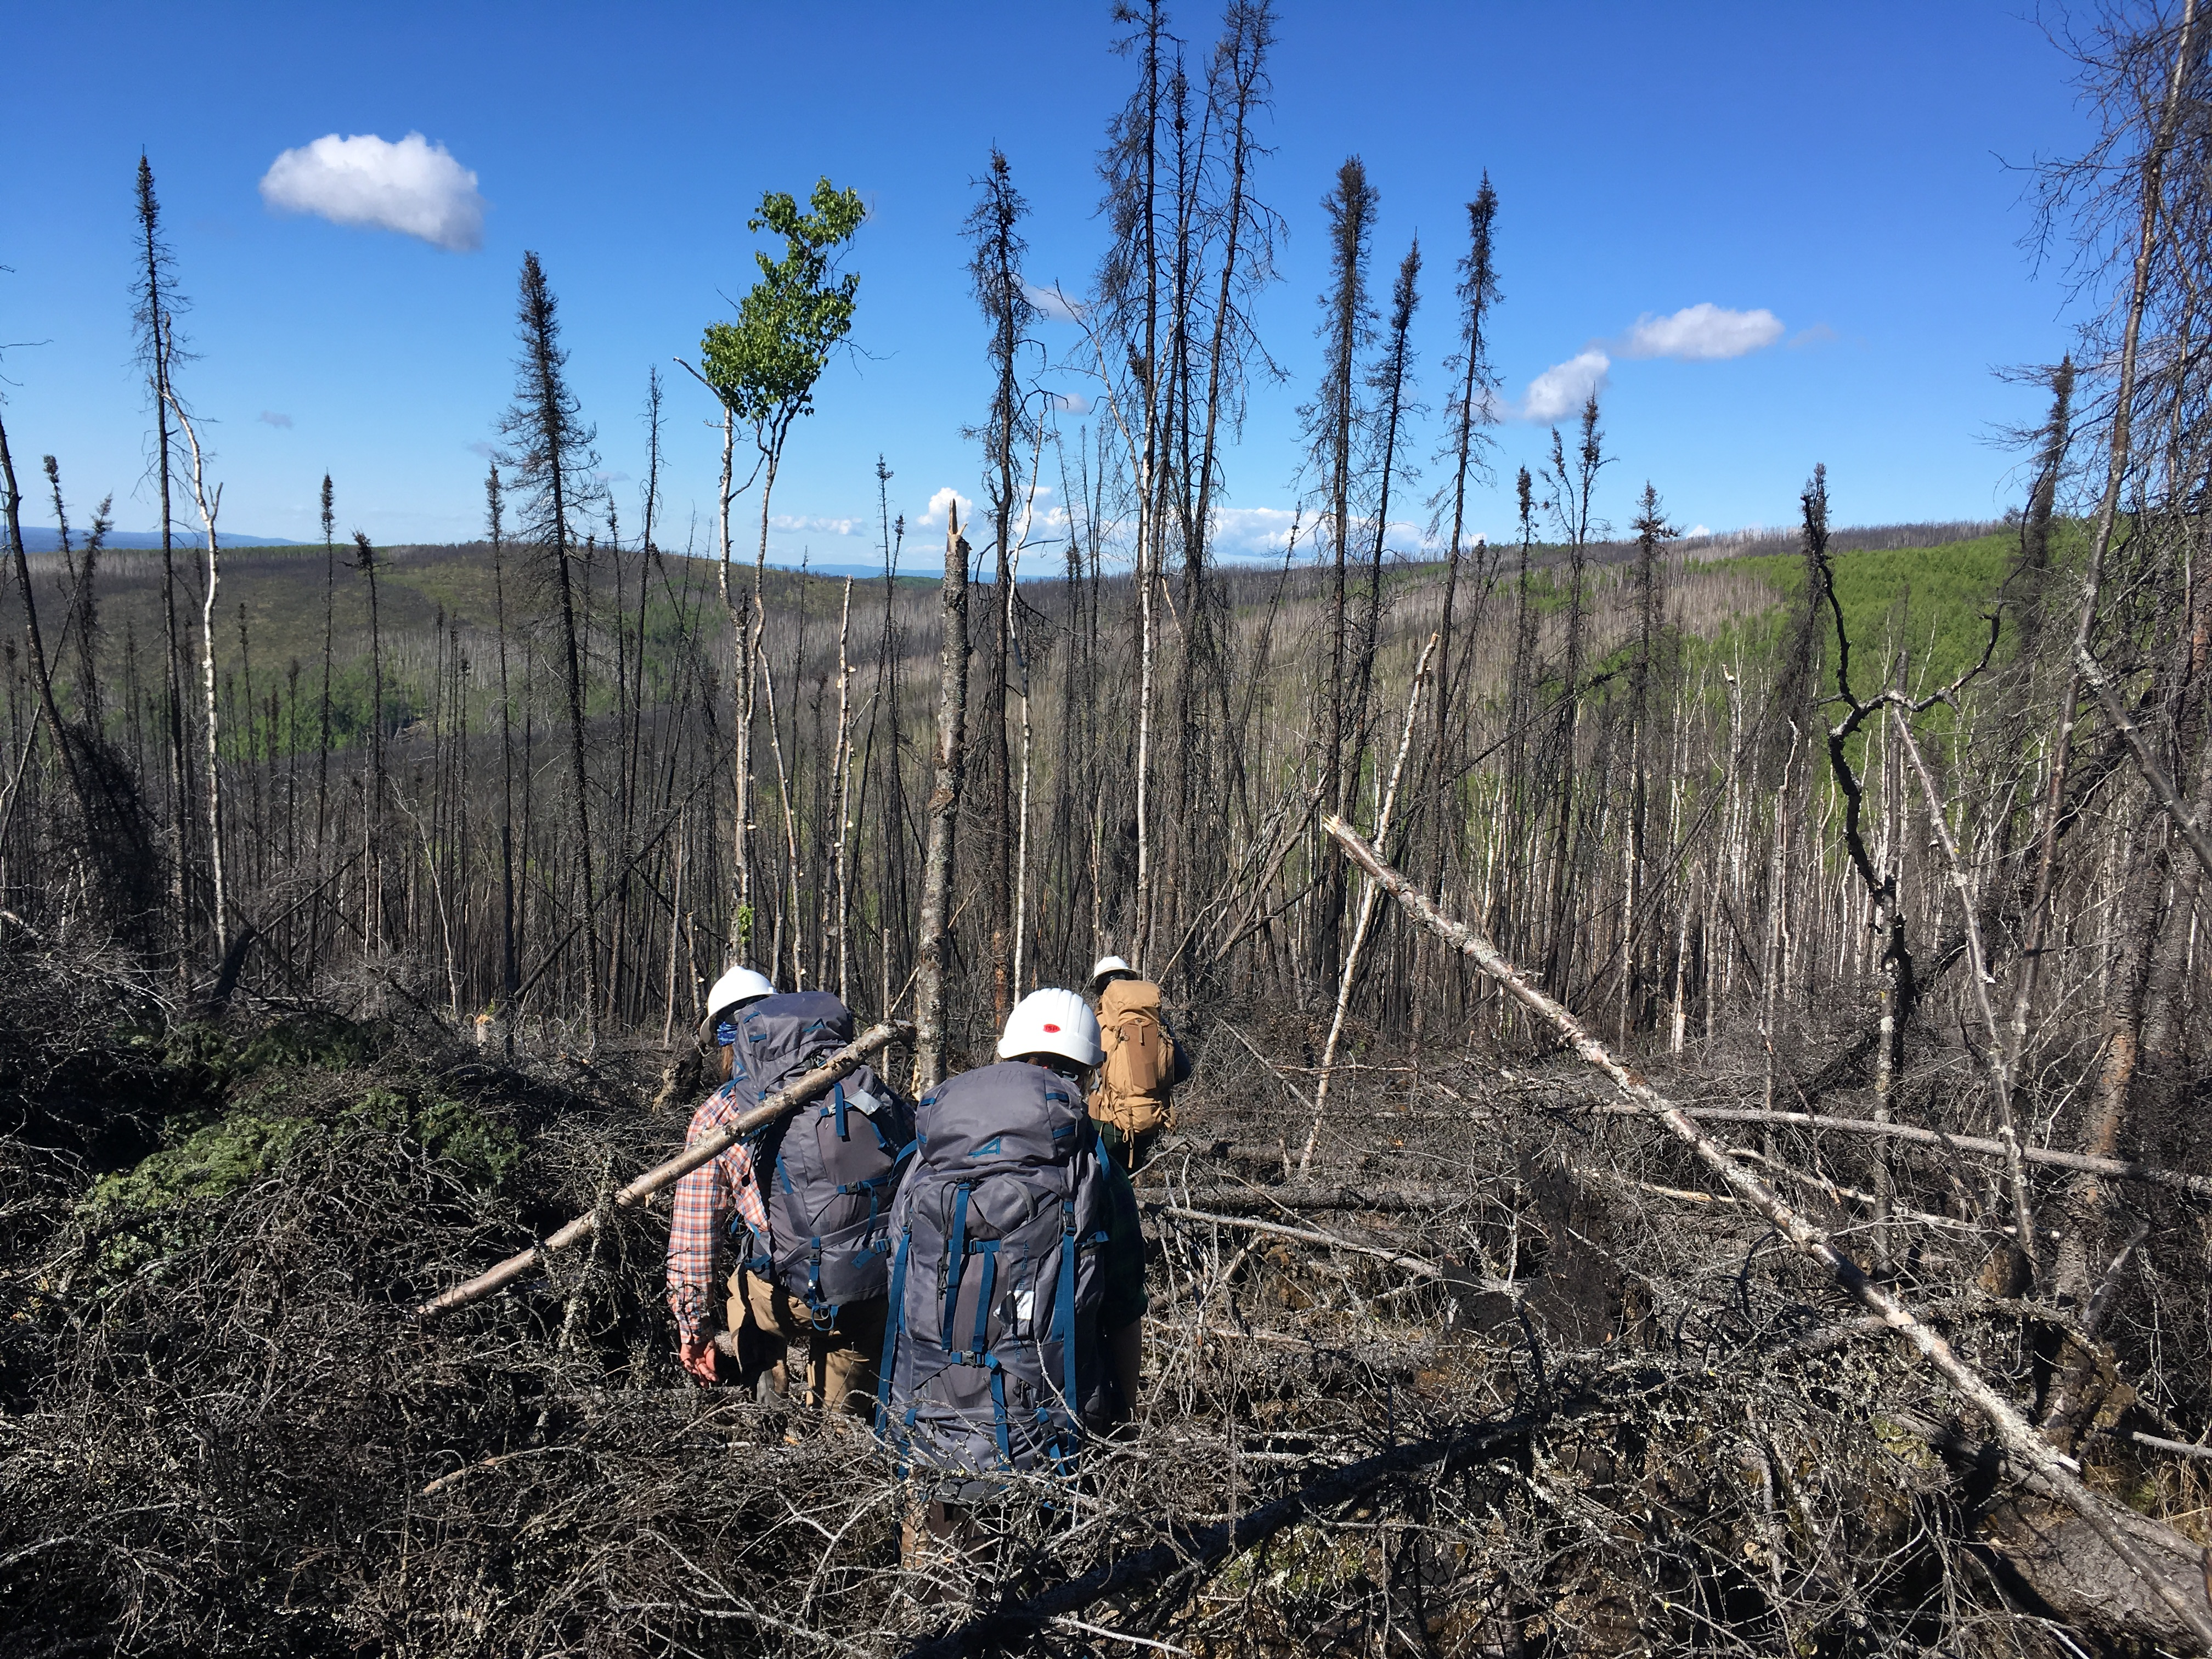 Photo: Interior Alaska FIA crew members hike through large previously burned spruce forest